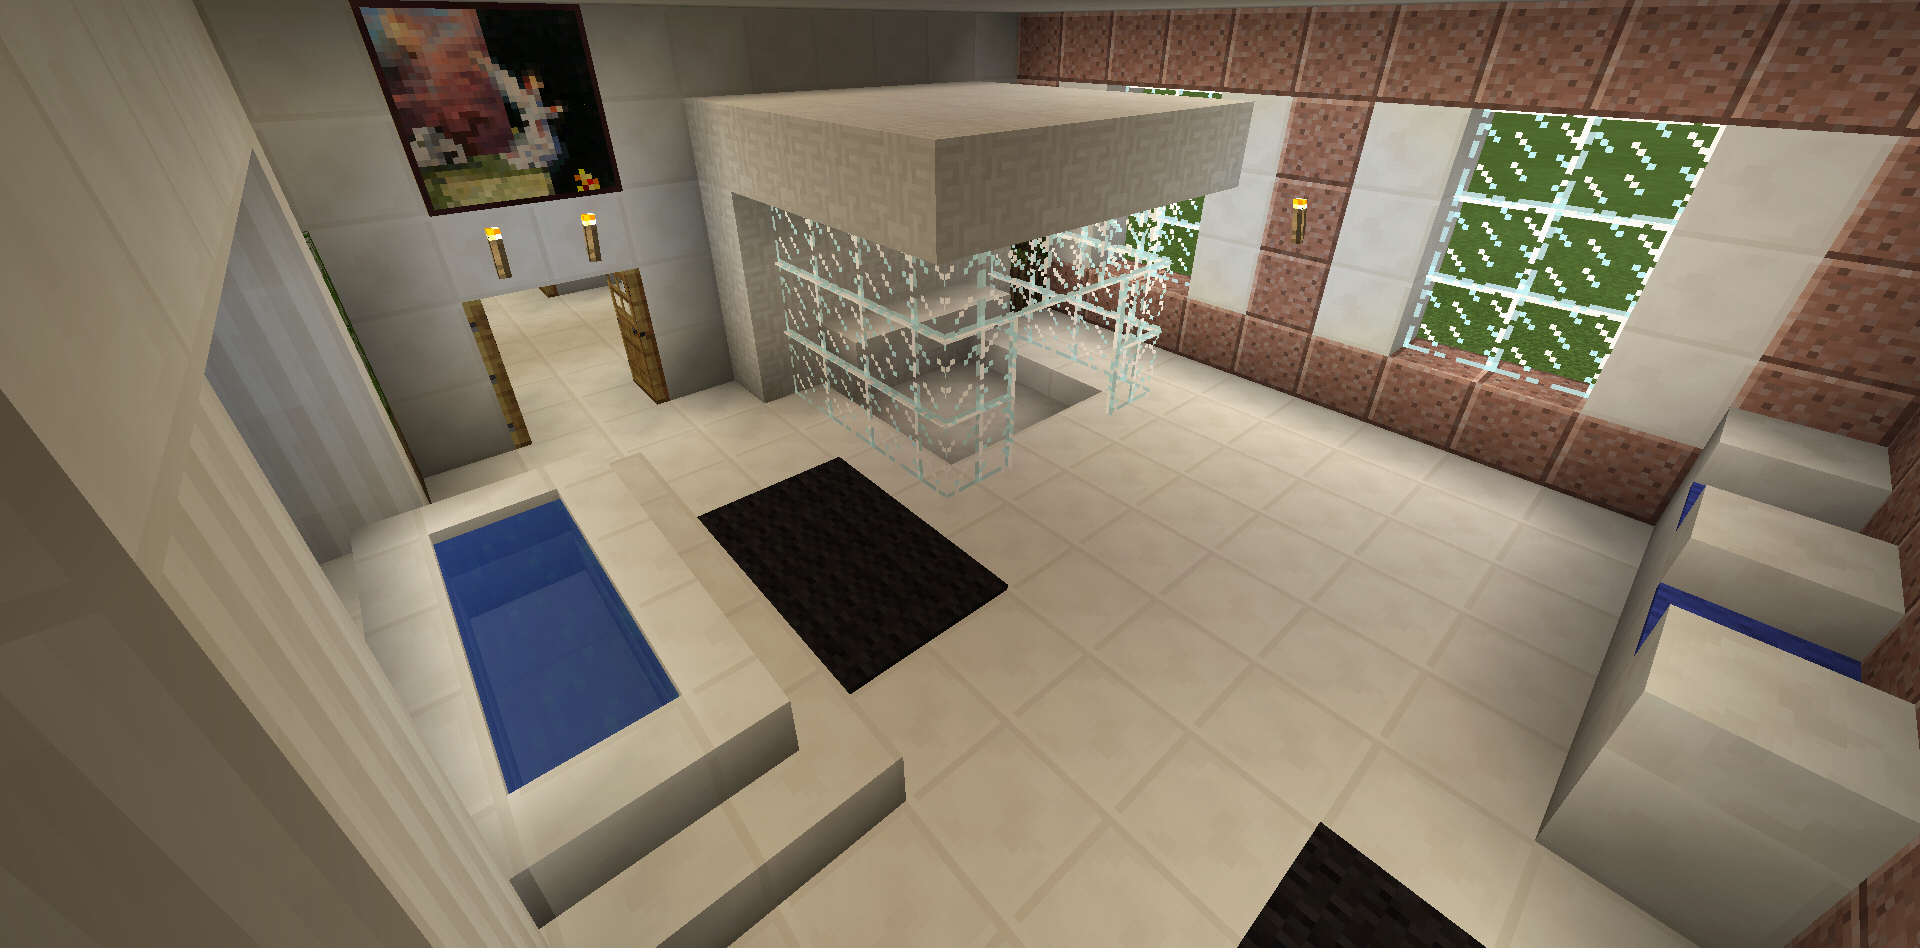 Bathroom Ideas On Minecraft minecraft bathroom glass shower garden tub sink | minecraft